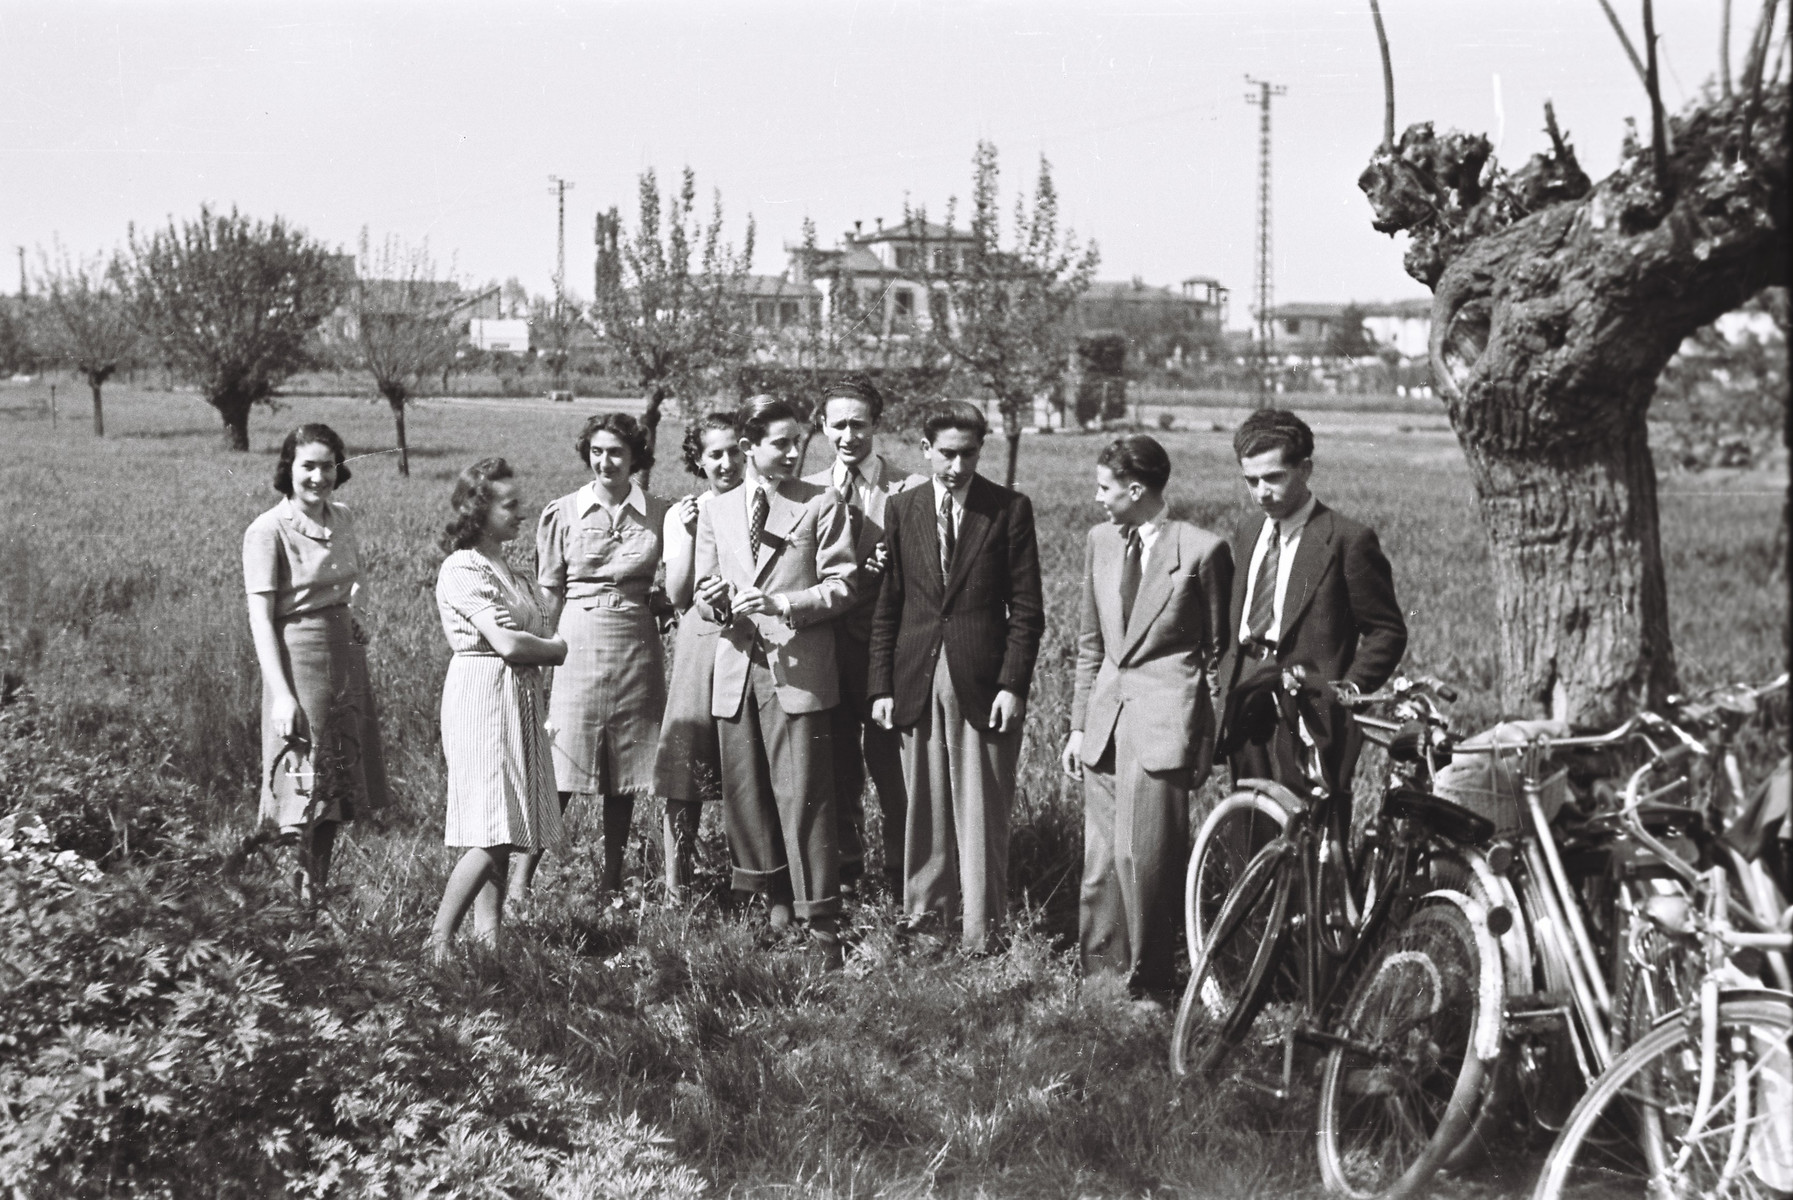 Students from the Scuolo via Eupili go for a bicycle excursion.  Among those pictured are Lia Foa (far left), Marcella Falco (second from left), Emma Pontremolli (fourth from left), Jarach (third from right), and Vughera (far right).